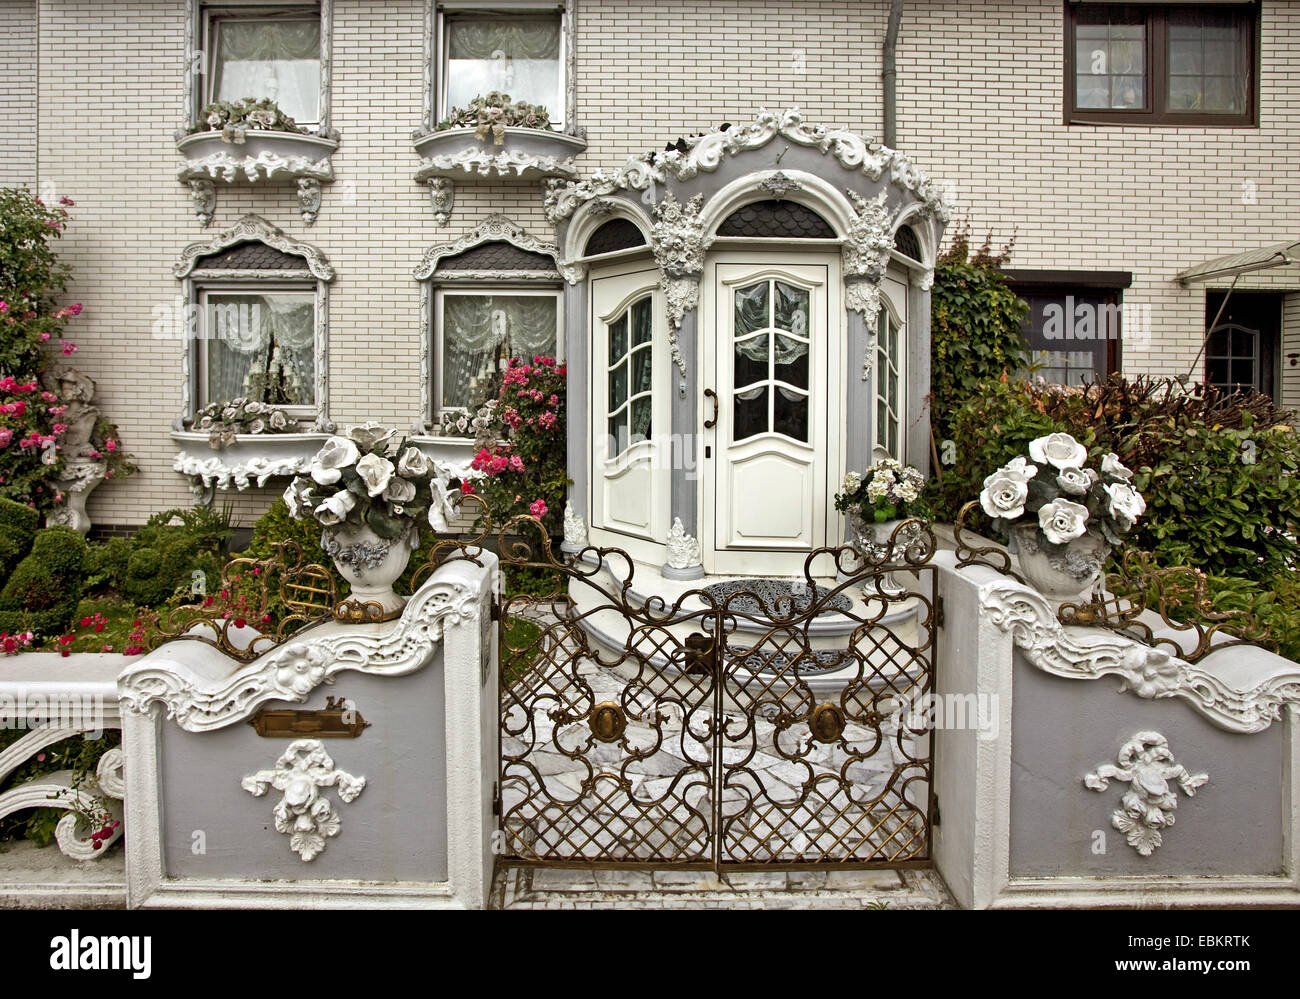 townhouse in the style of Gelsenkirchen Baroque, Germany, North Rhine-Westphalia, Ruhr Area, Gelsenkirchen - Stock Image